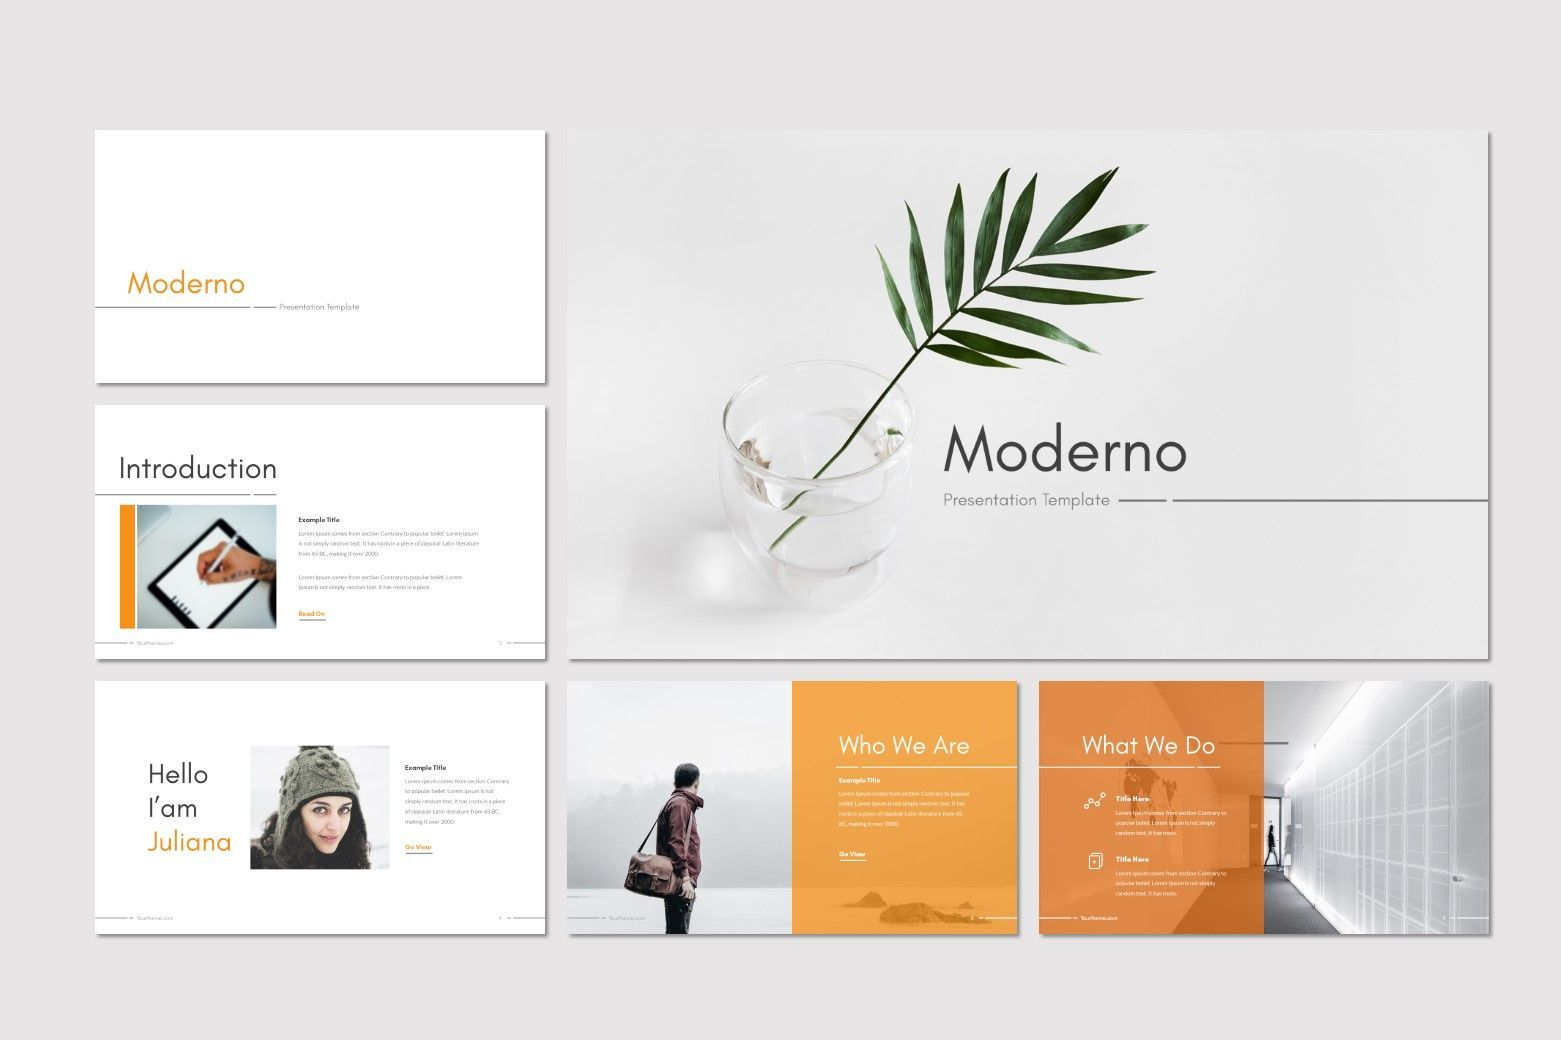 Moderno - PowerPoint Template, Slide 2, 08211, Presentation Templates — PoweredTemplate.com